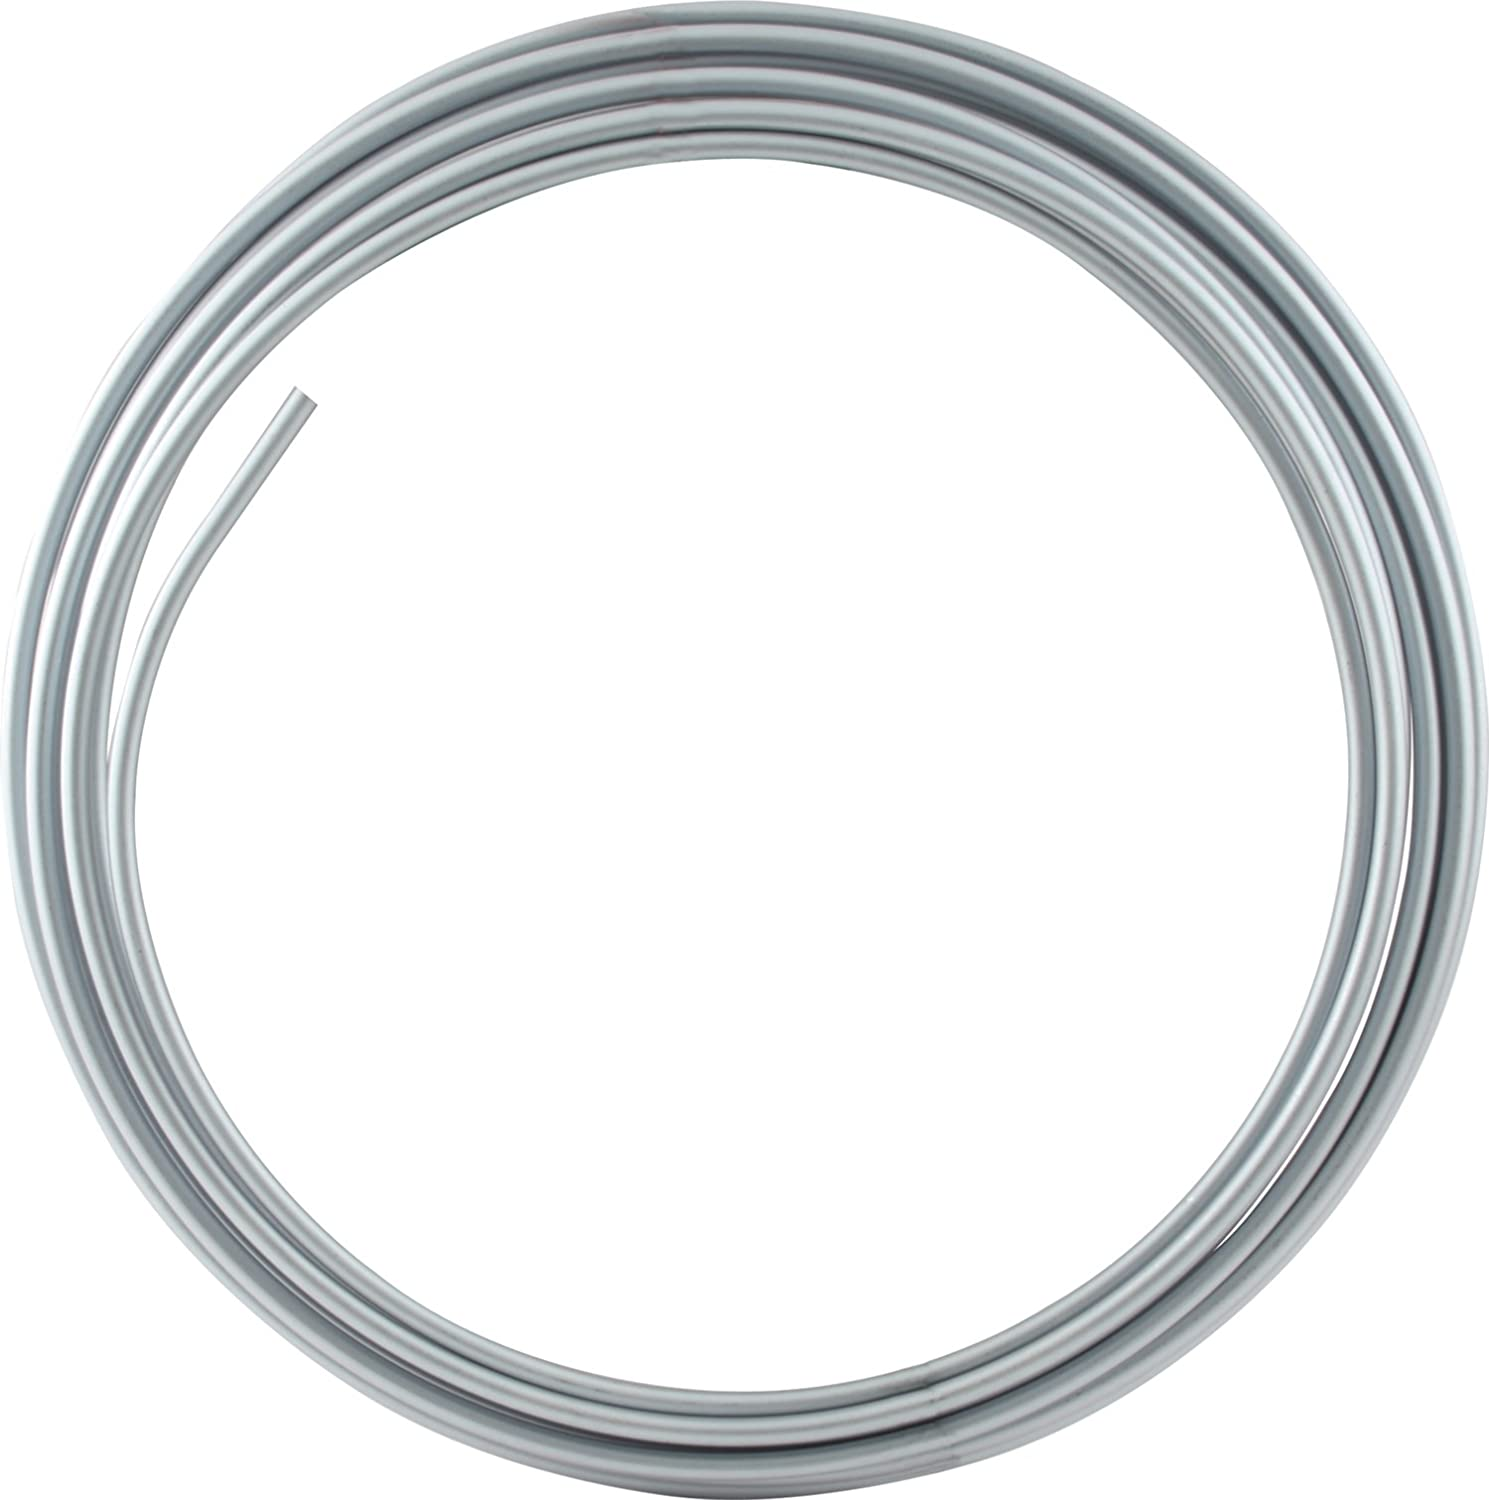 Allstar ALL48328 25' 3/8' Diameter Zinc Plated Stainless Steel Coiled Tubing Fuel Line